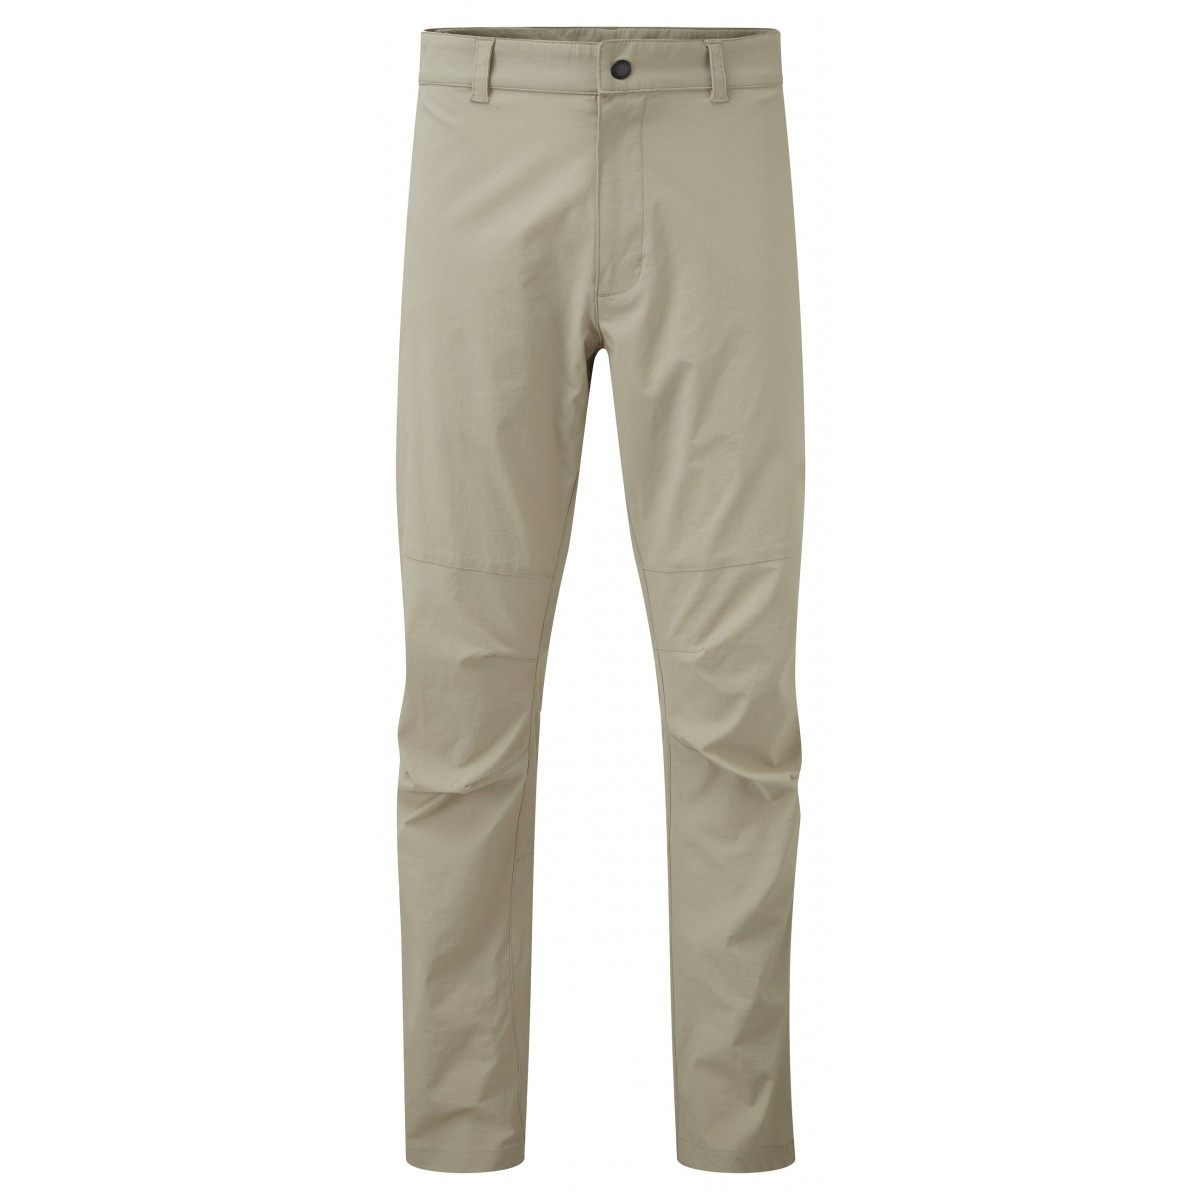 Machu Trousers - Insect Shield - Long - Sand